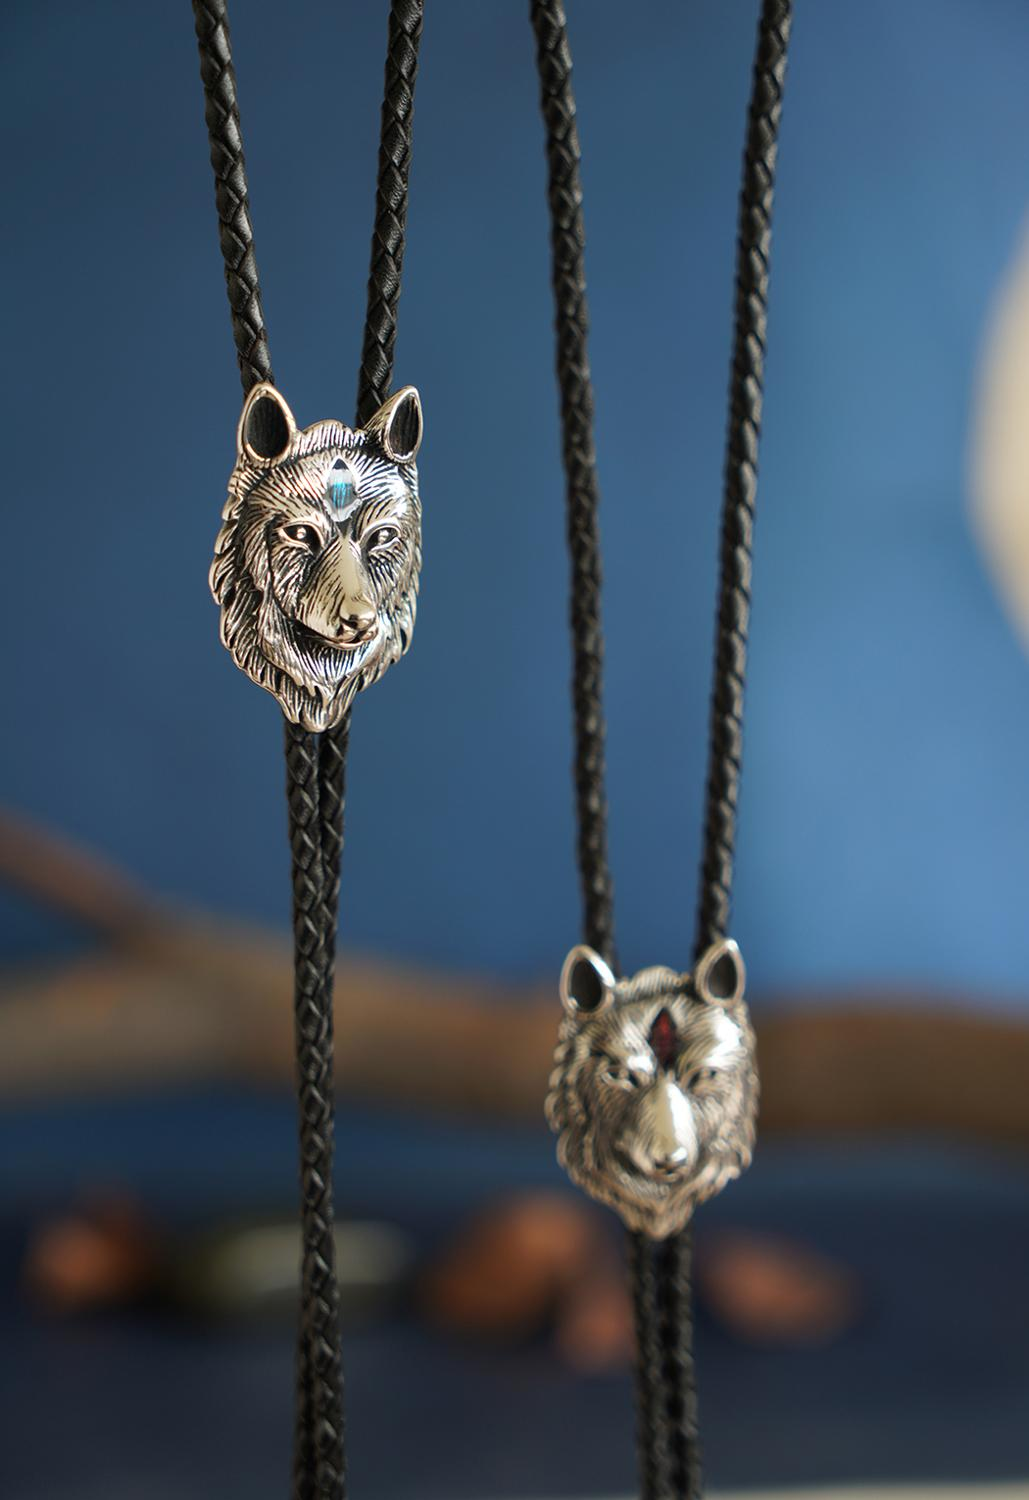 Wholesale Retail New Vintage Style Stainless Steel Wolf Bolo Tie Leather Necklace Free Shipping